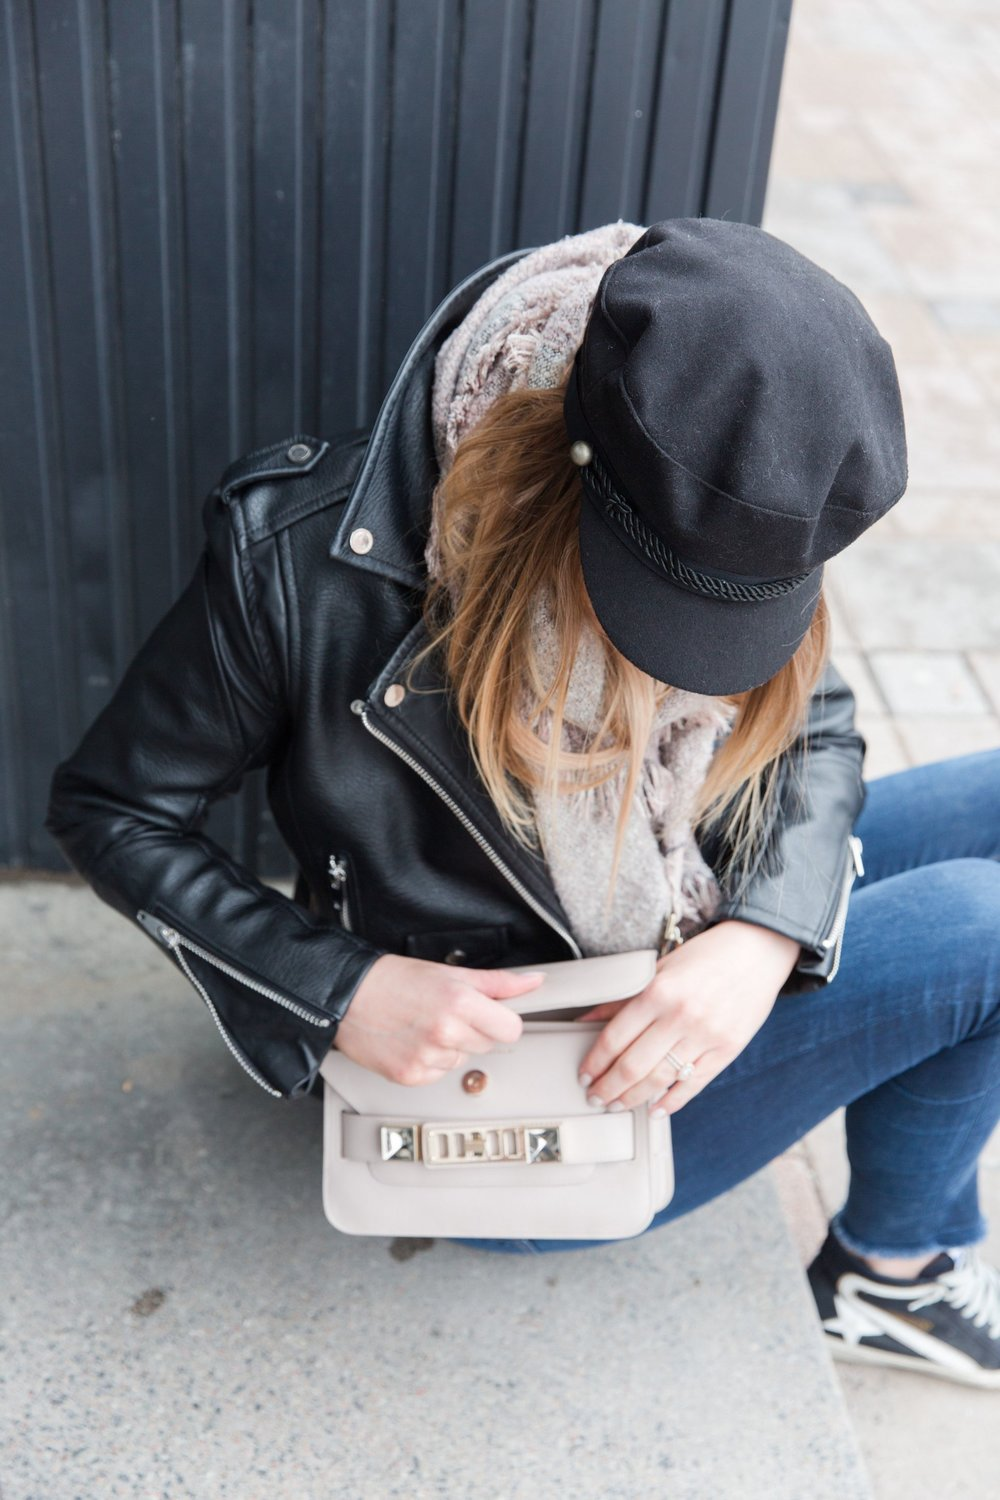 life-with-aco-what-to-wear-in-the-spring-faux-leather-jacket-outfit-with-sneakers-baker-boy-hat.jpg